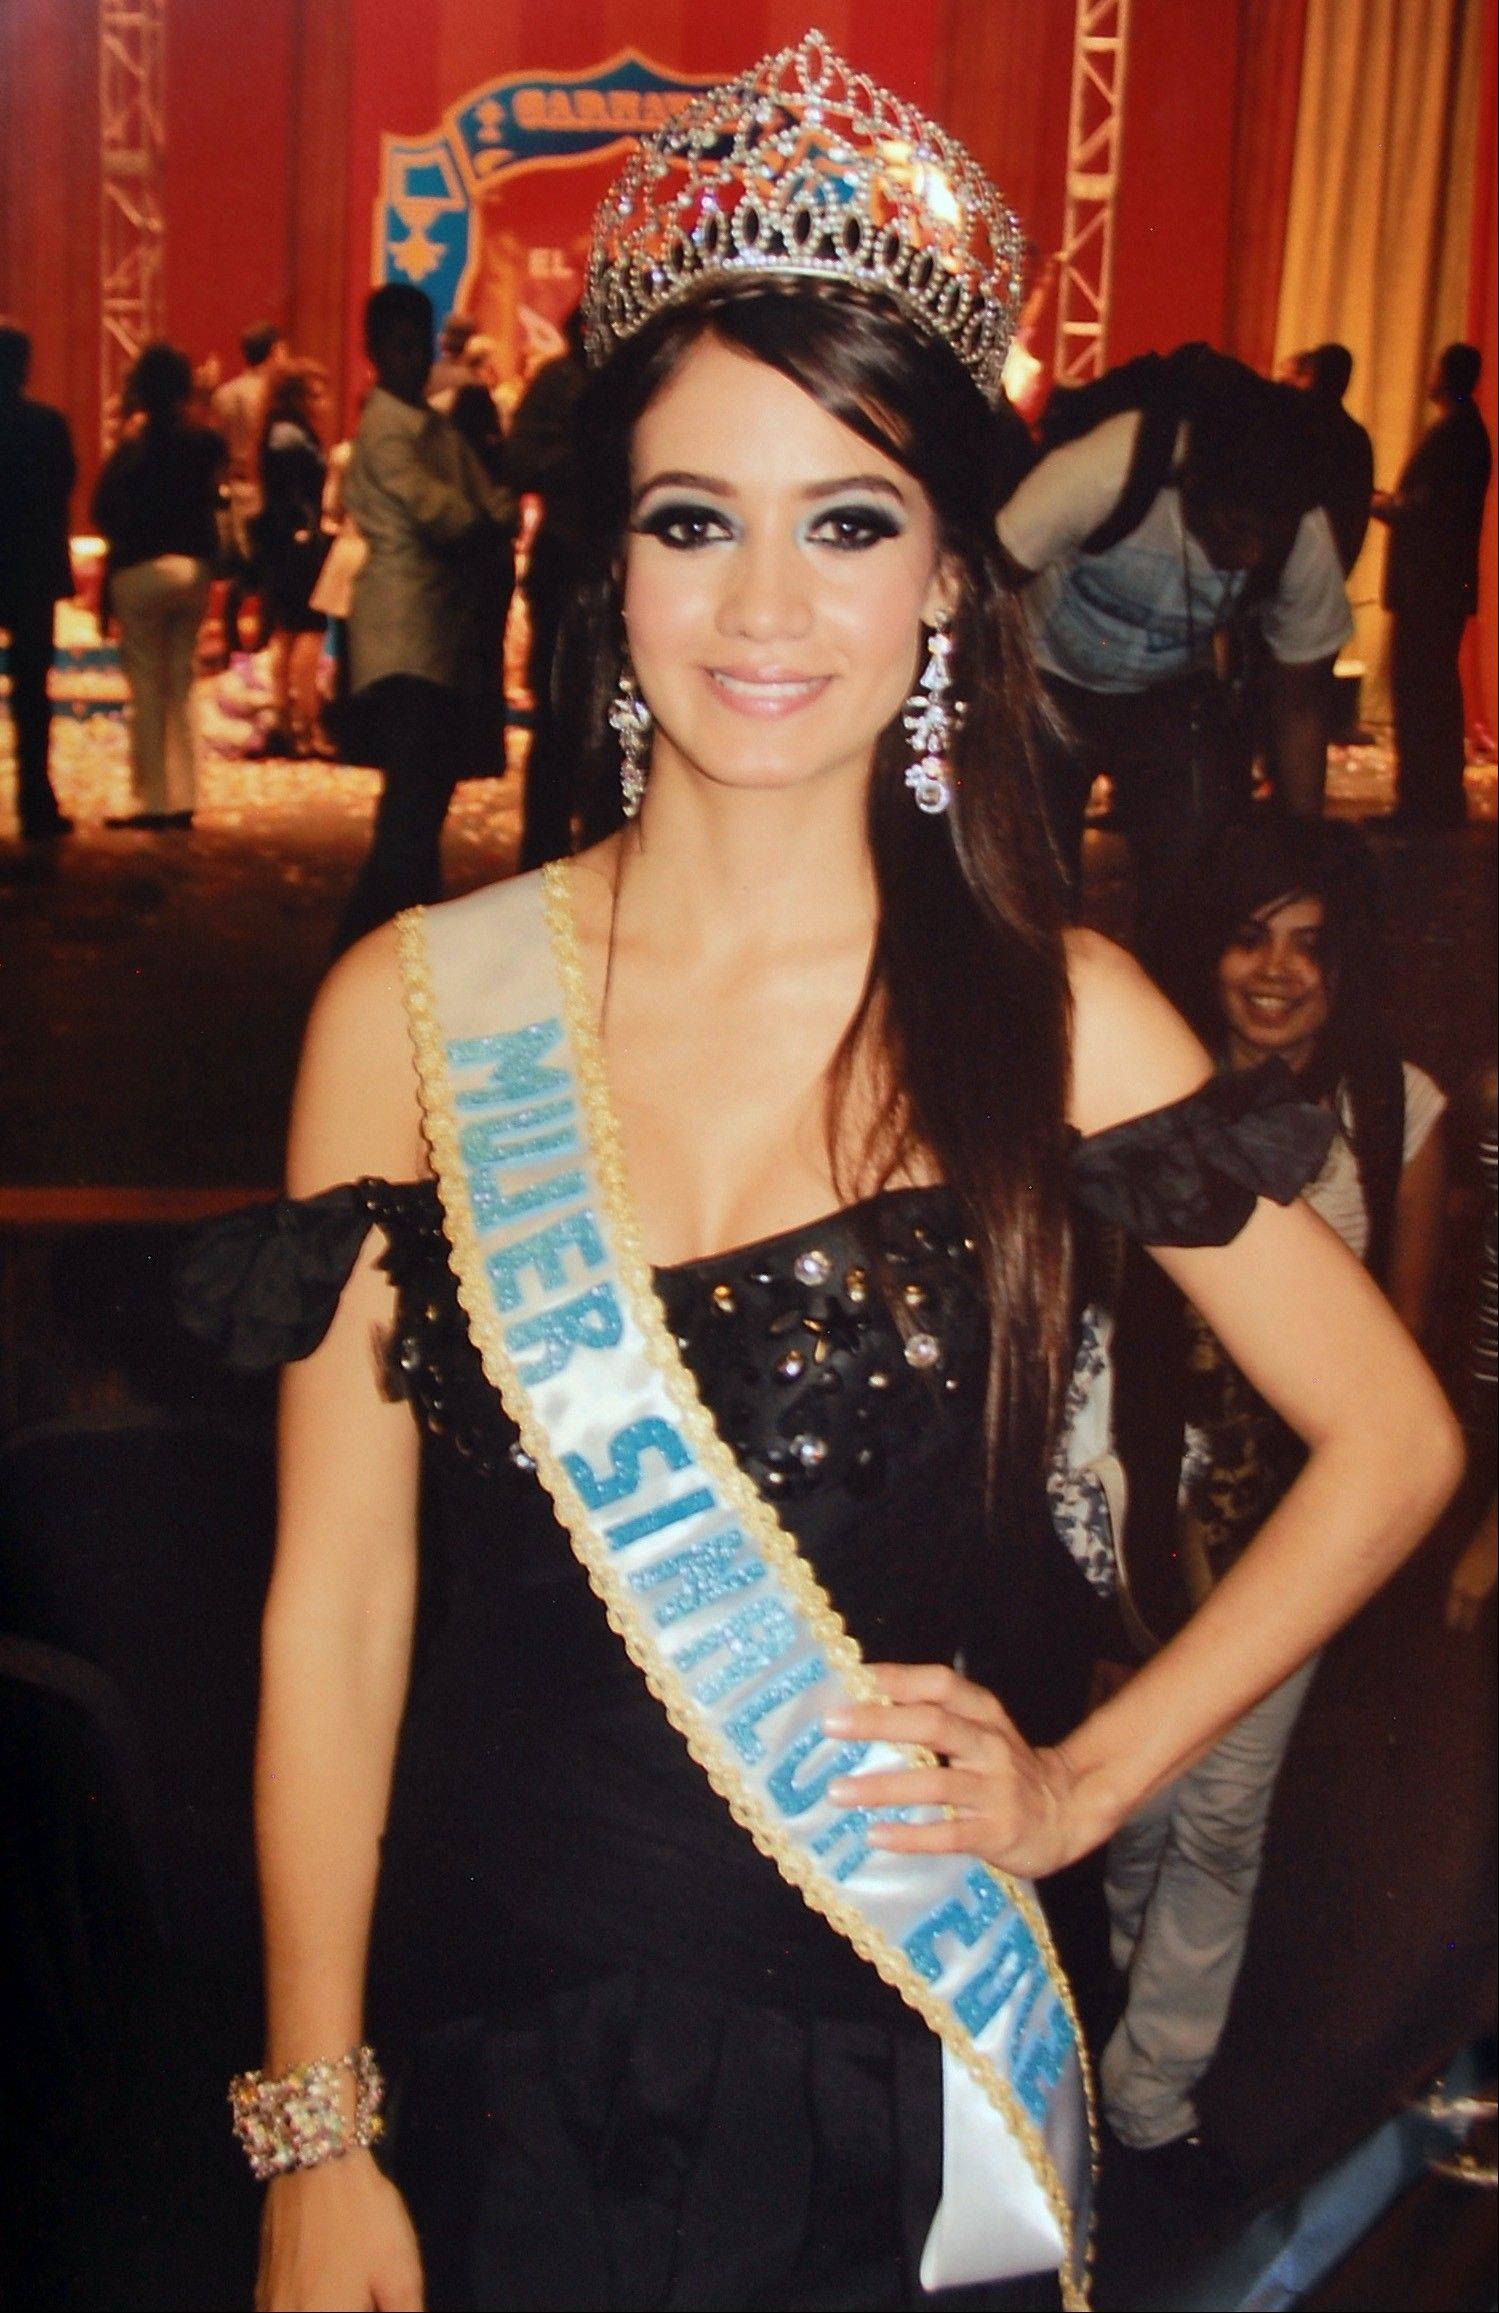 Associated Press/February 2012Maria Susana Flores Gamez, after being crowned Sinaloa Woman 2012 in Culiacan, Mexico.